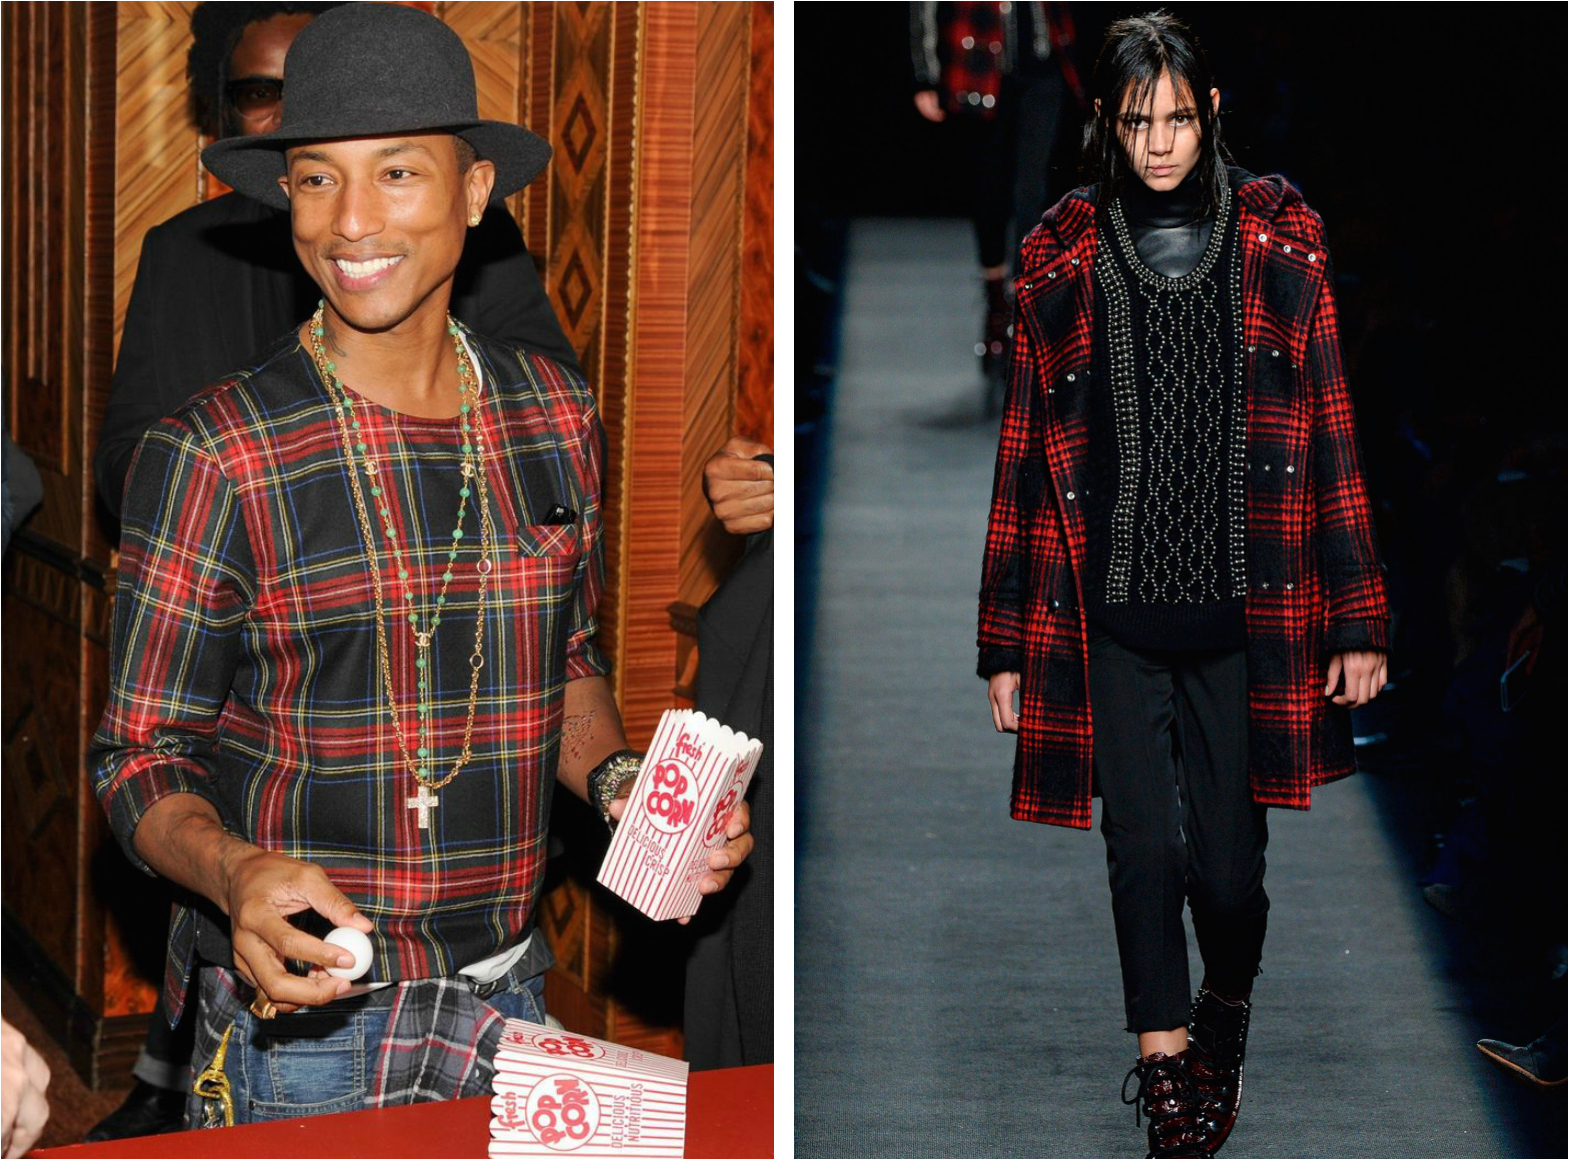 From left to right: Pharrell wearing a plaid shirt, and the Alexander WangFall 2015 Collection.